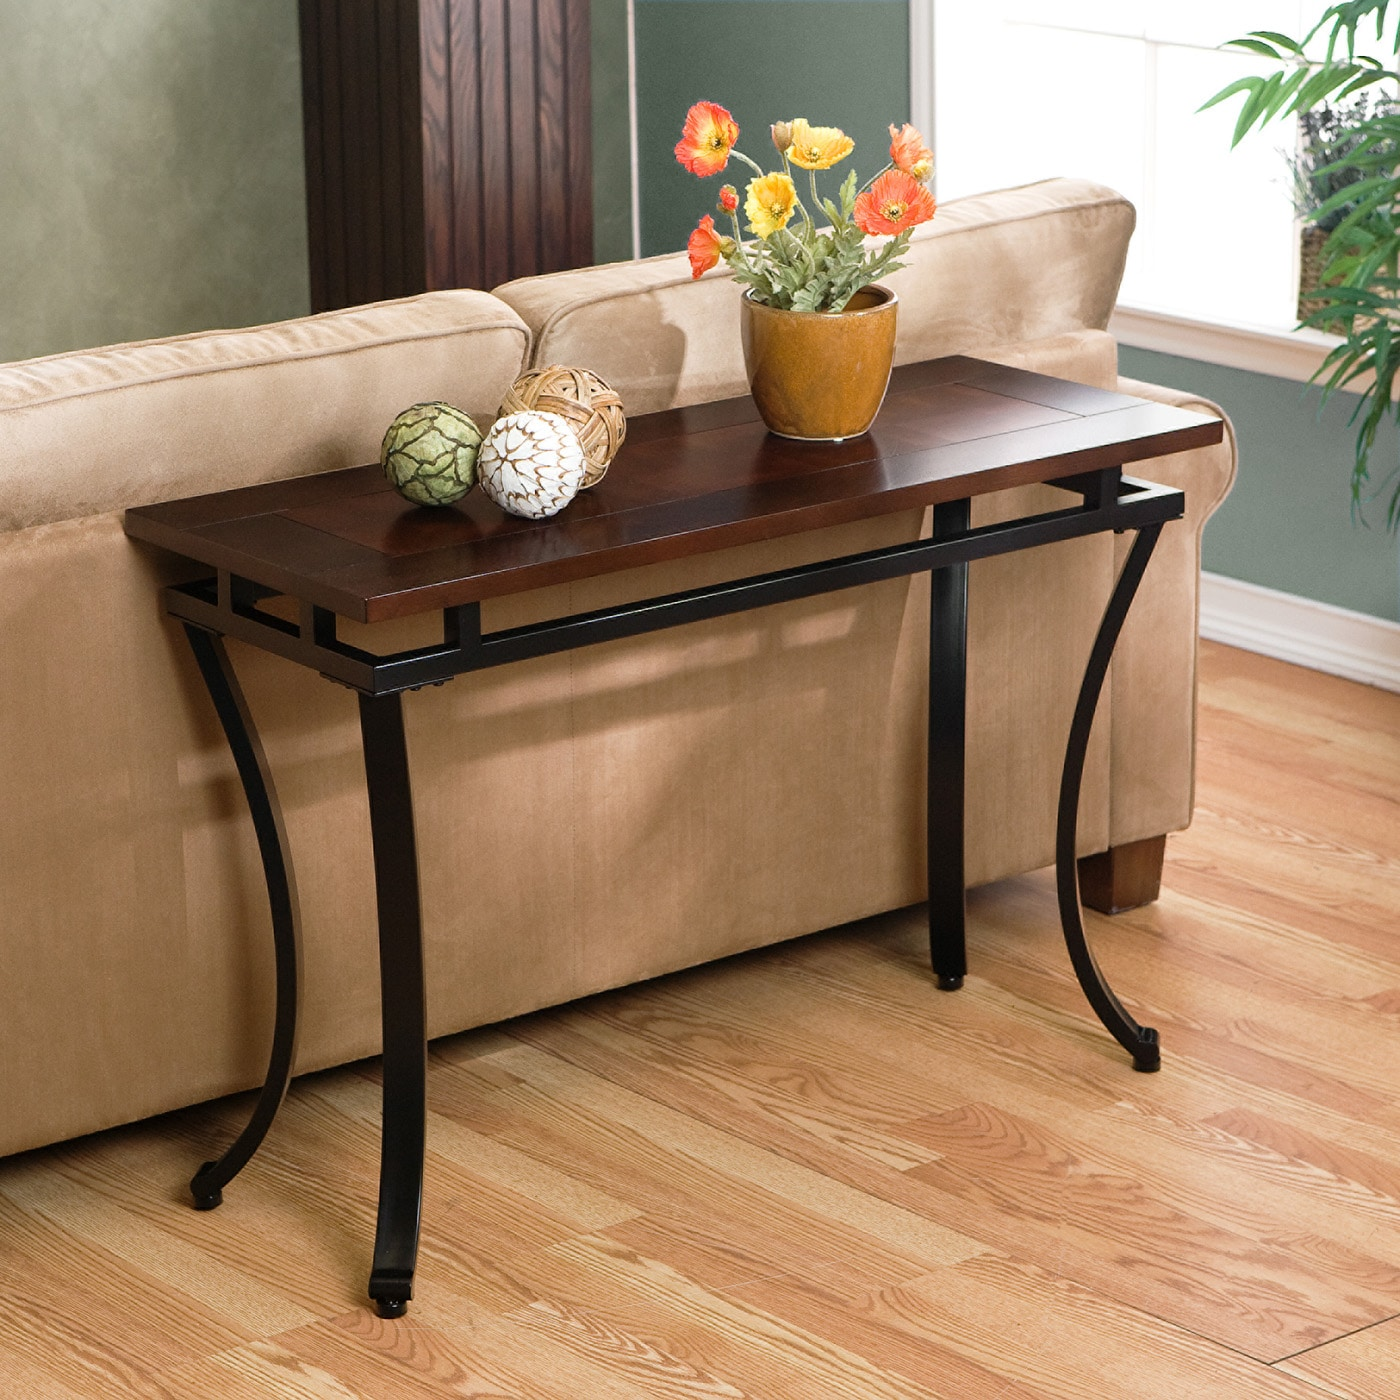 Upton Home Cornell Sofa Table at Sears.com